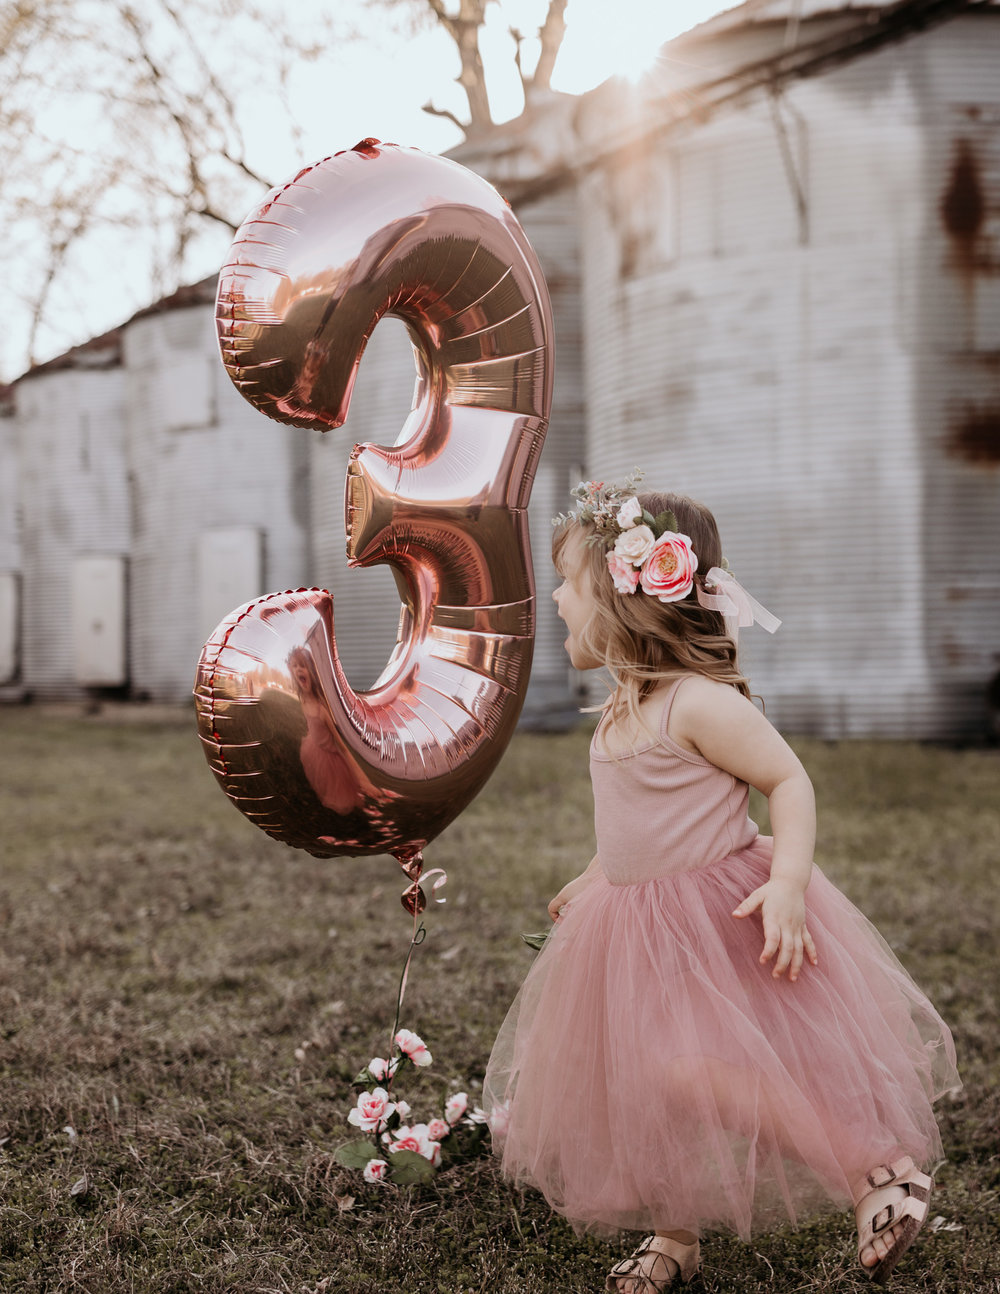 Young Girl with Three Balloon